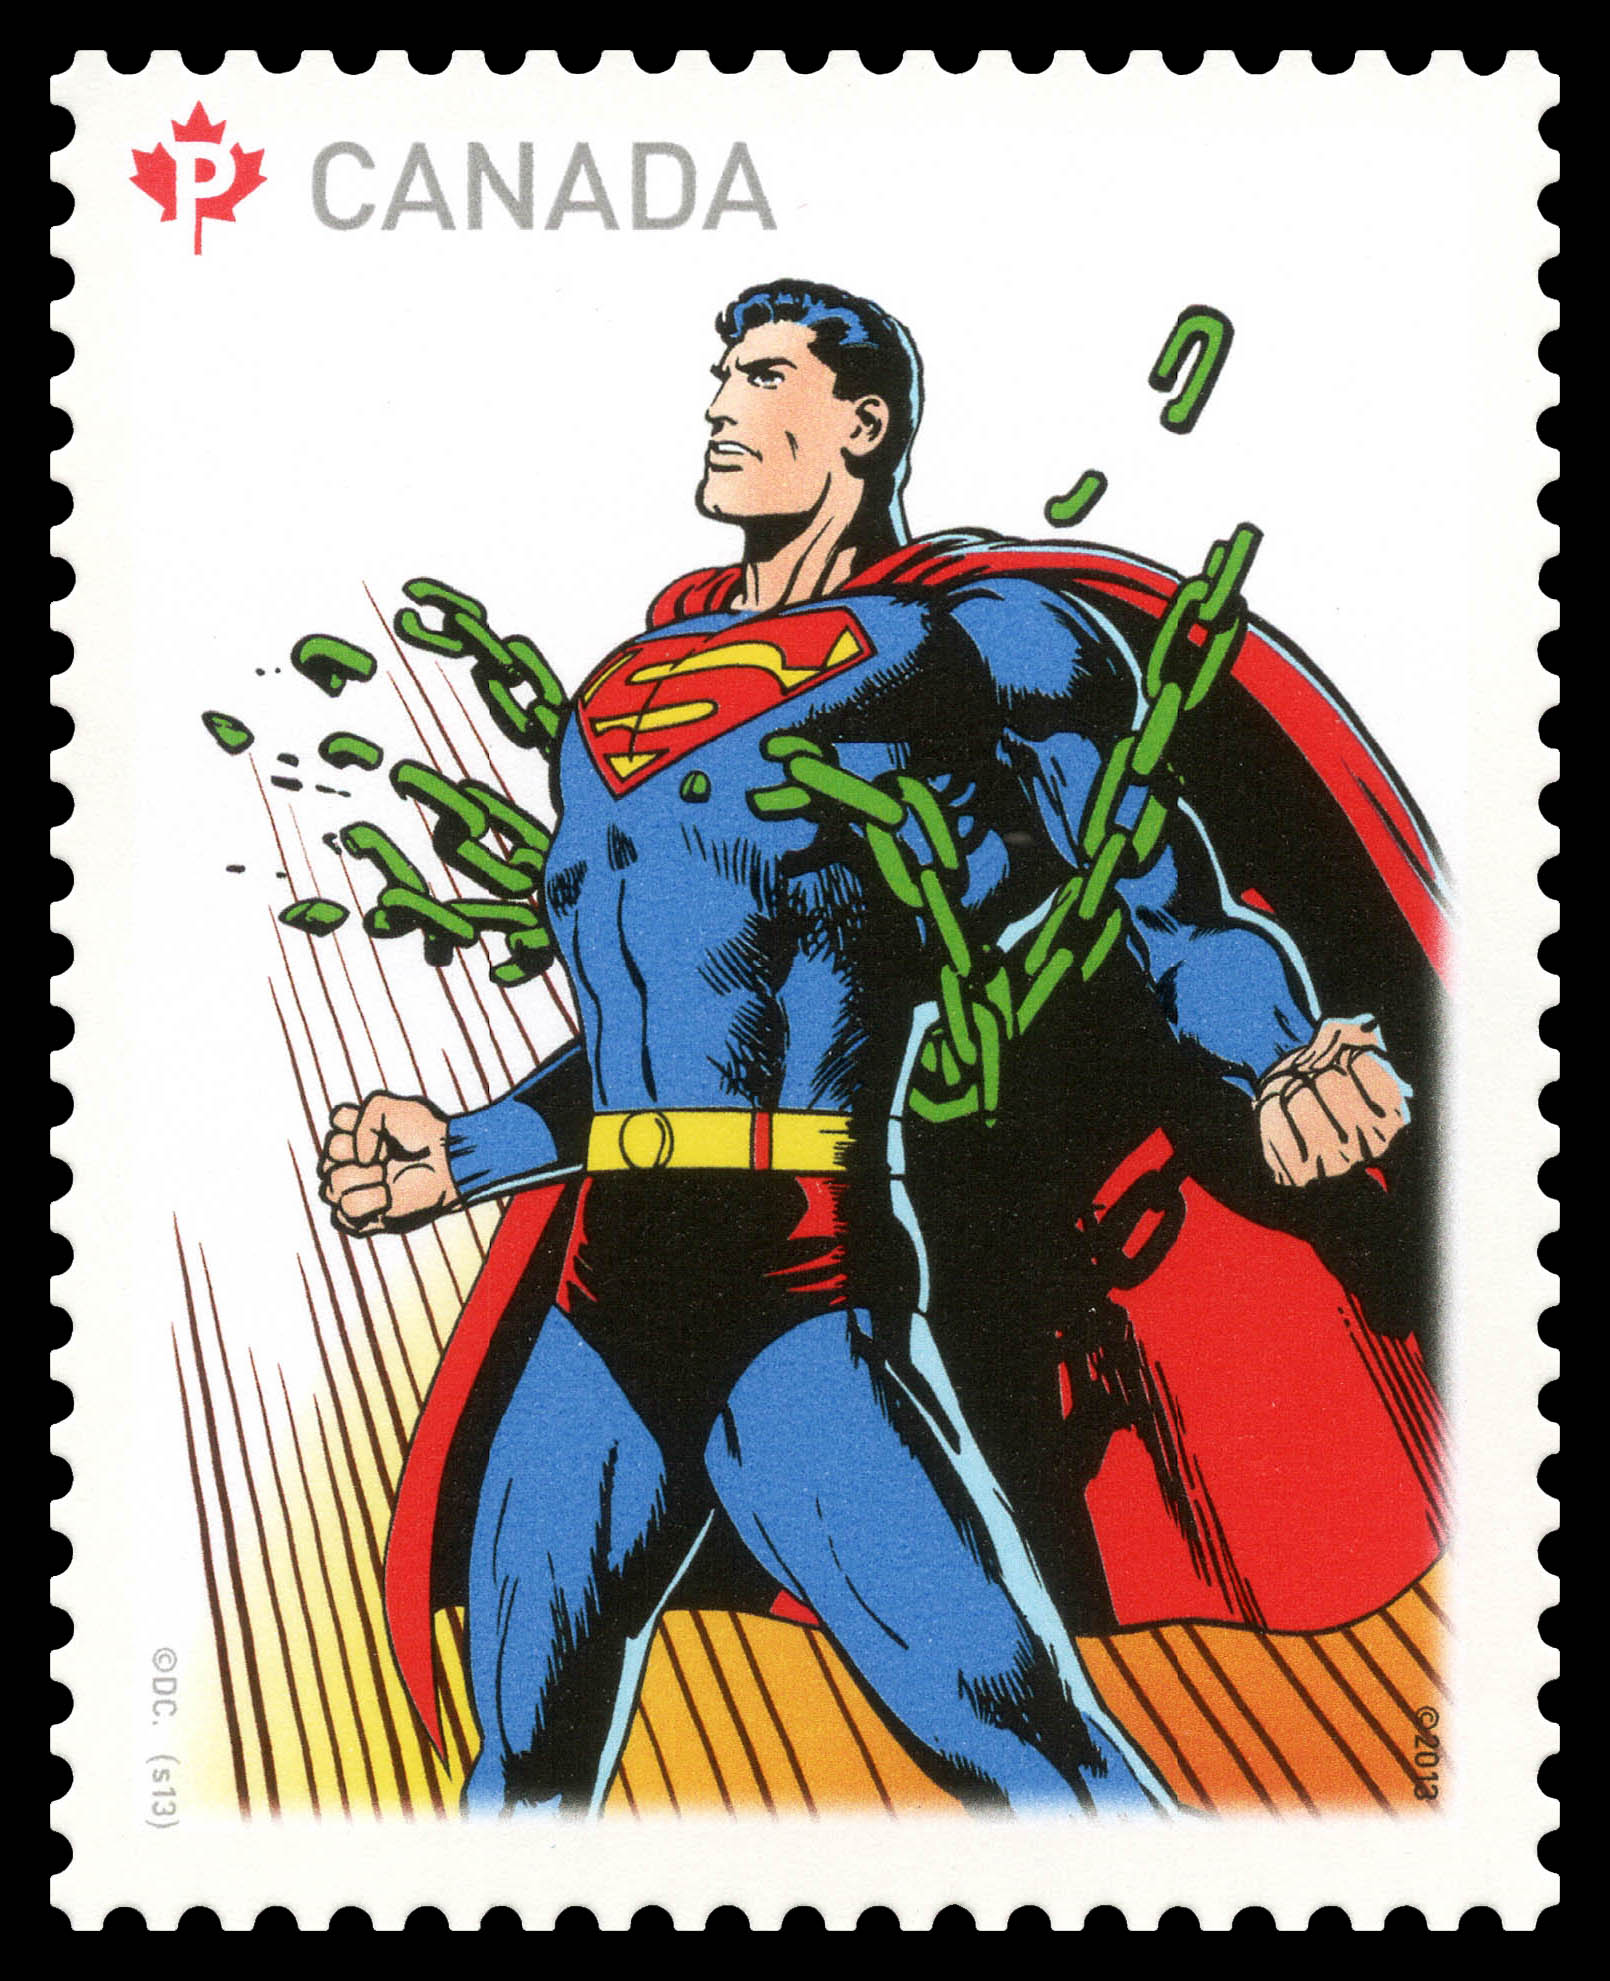 Superman Breaking Chains Canada Postage Stamp | Superman - 75th Anniversary